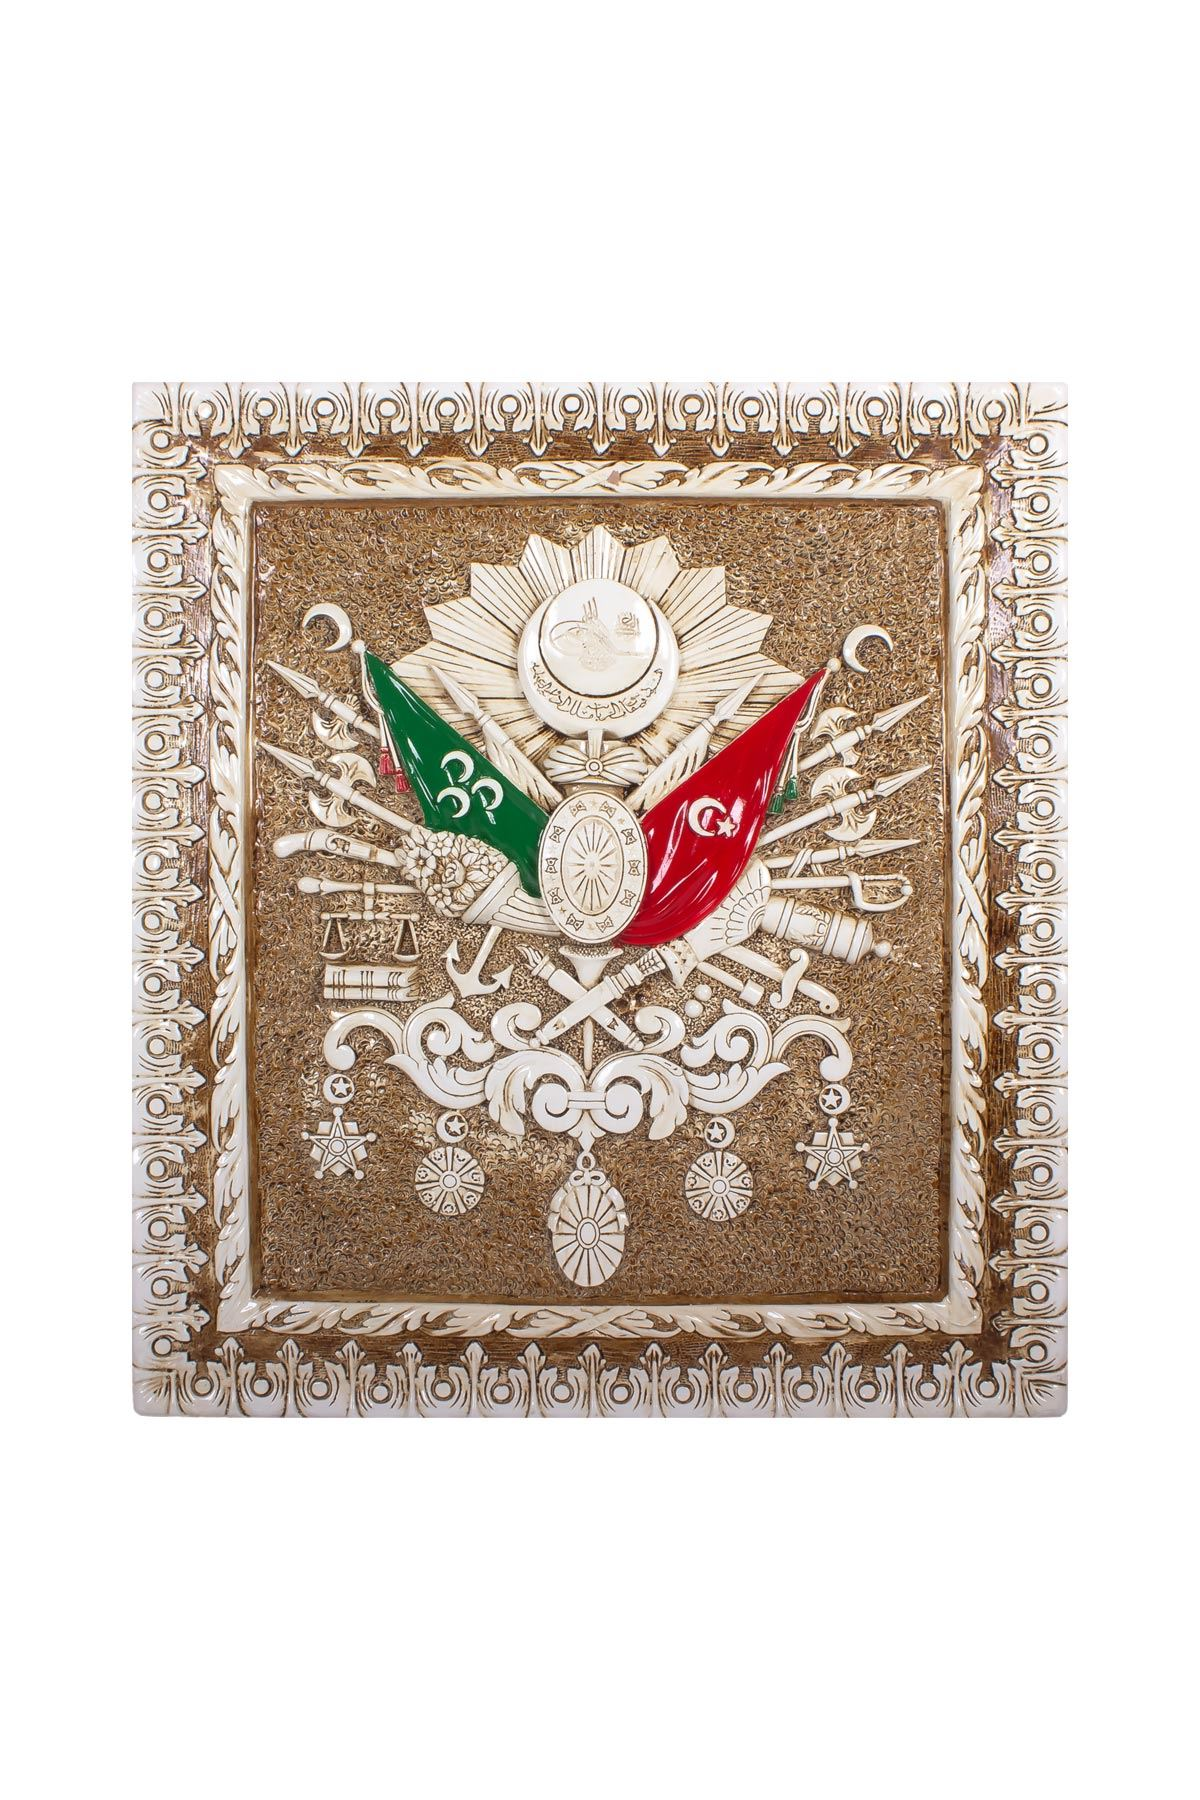 Ottoman State Emblem - White color